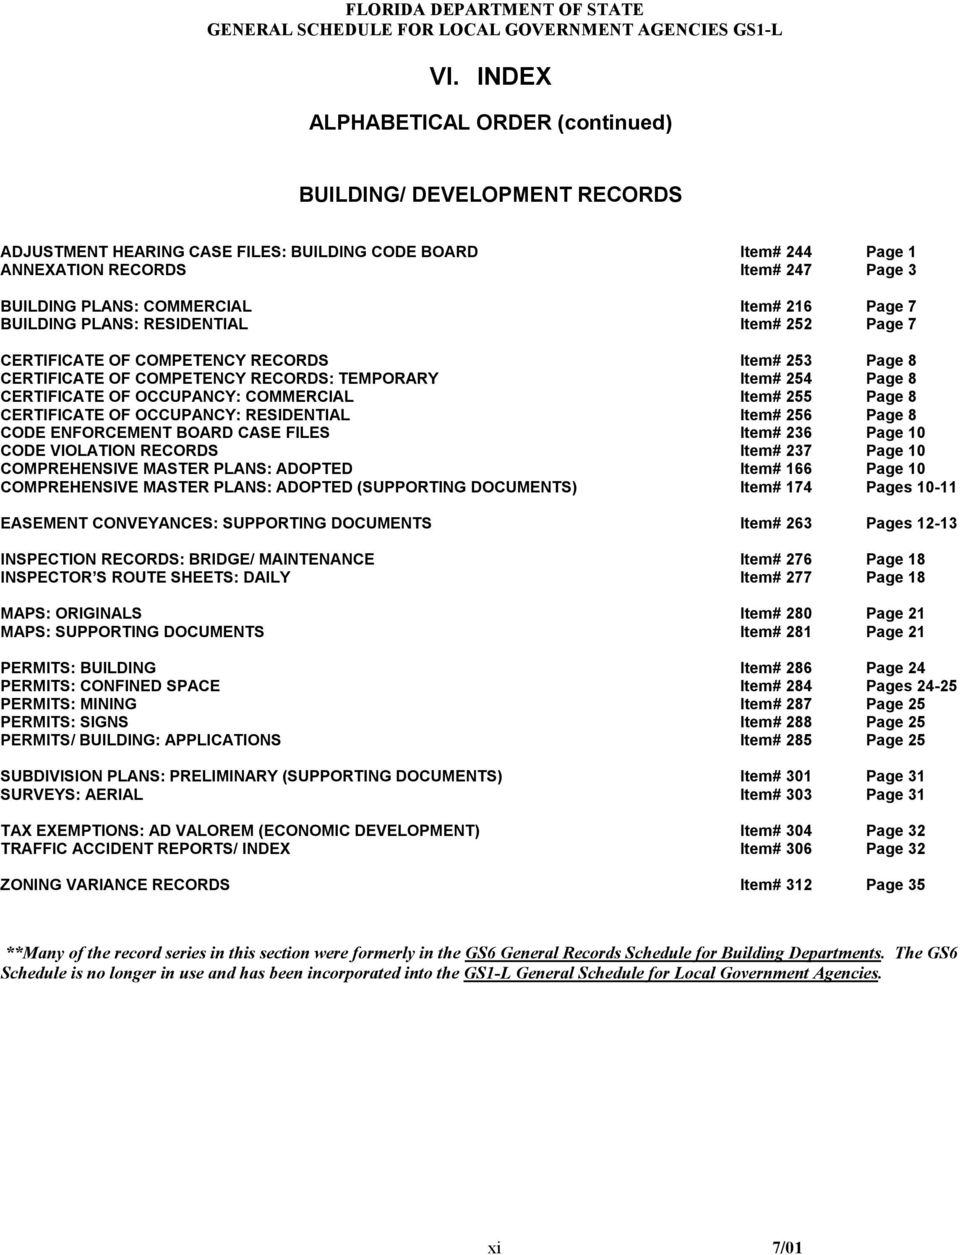 Item# 216 Page 7 BUILDING PLANS: RESIDENTIAL Item# 252 Page 7 CERTIFICATE OF COMPETENCY RECORDS Item# 253 Page 8 CERTIFICATE OF COMPETENCY RECORDS: TEMPORARY Item# 254 Page 8 CERTIFICATE OF